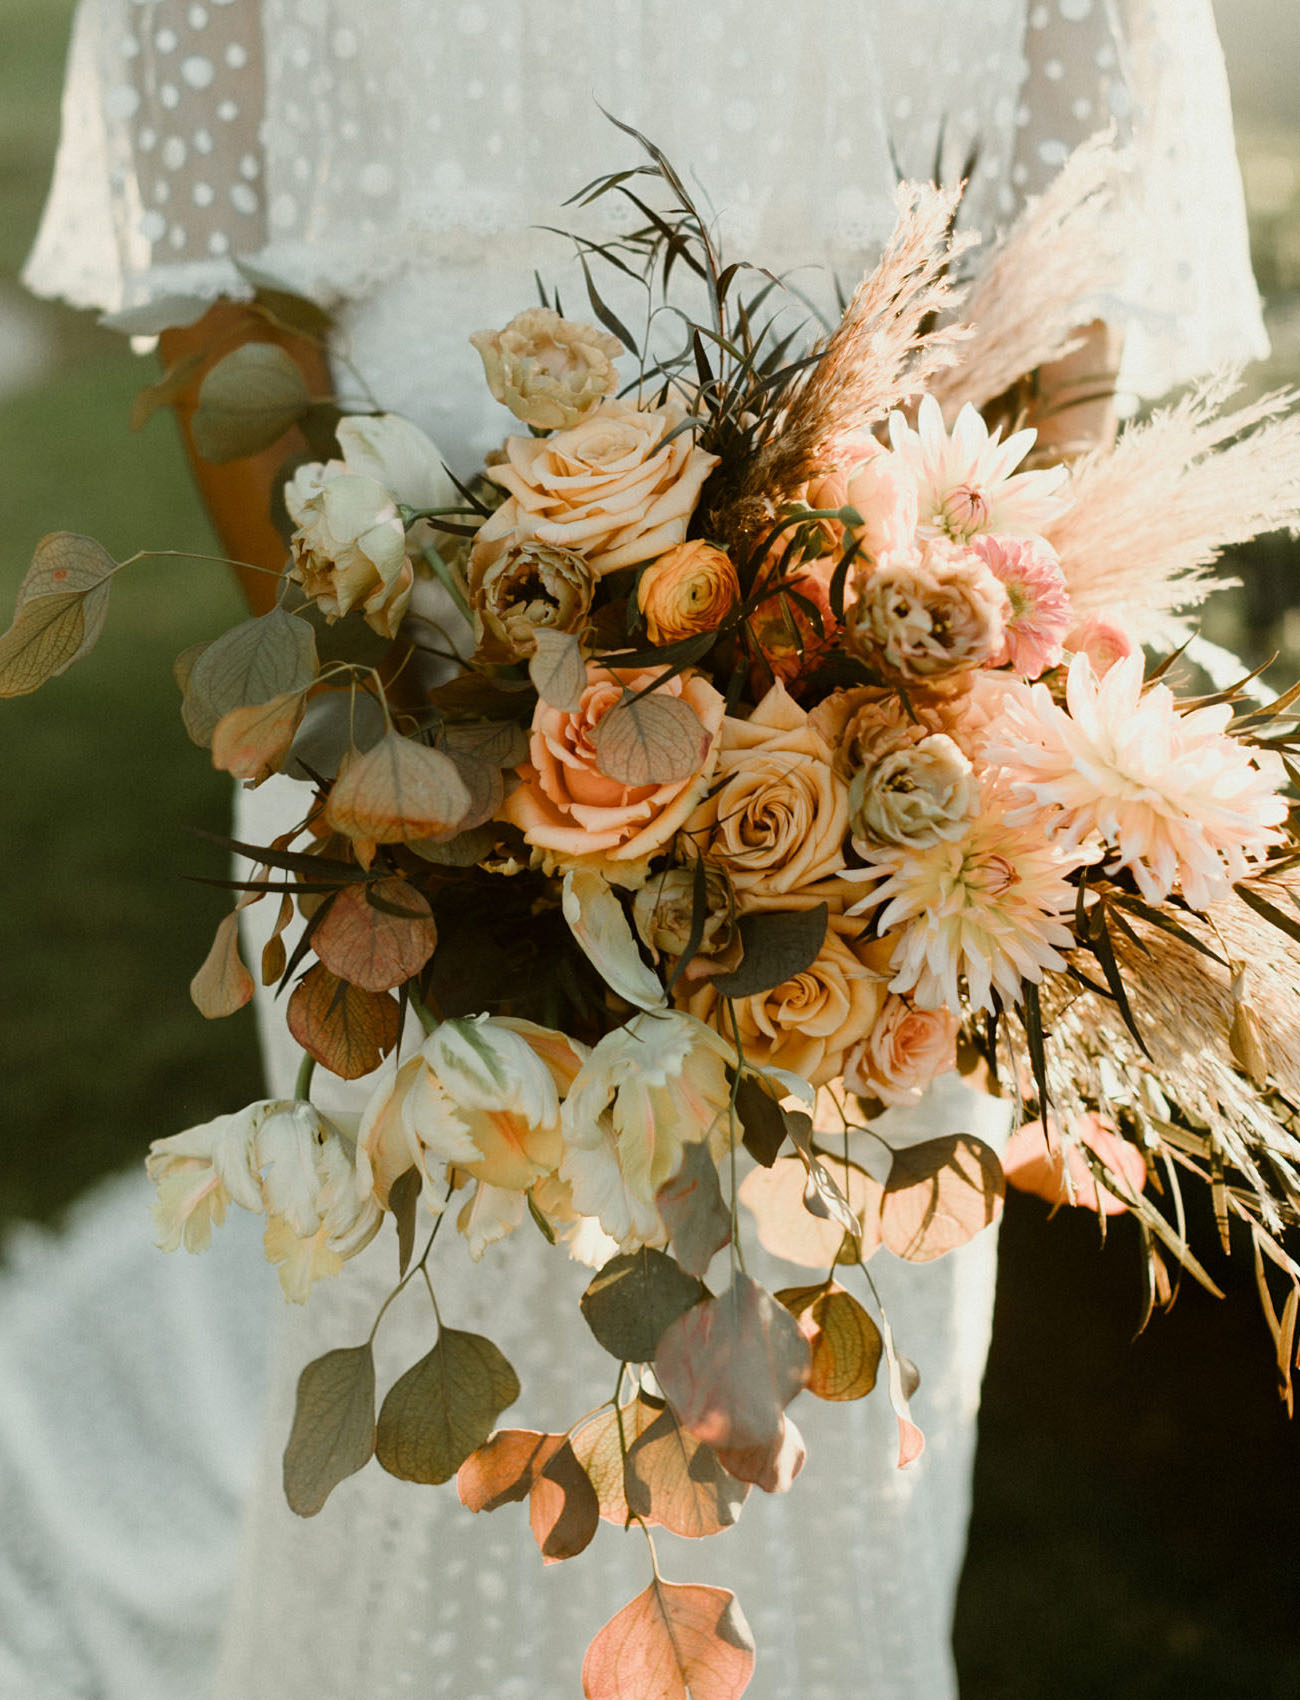 She was carrying a lush bouquet with pampas grass, herbs and done in fall inspired shades of orange and blush